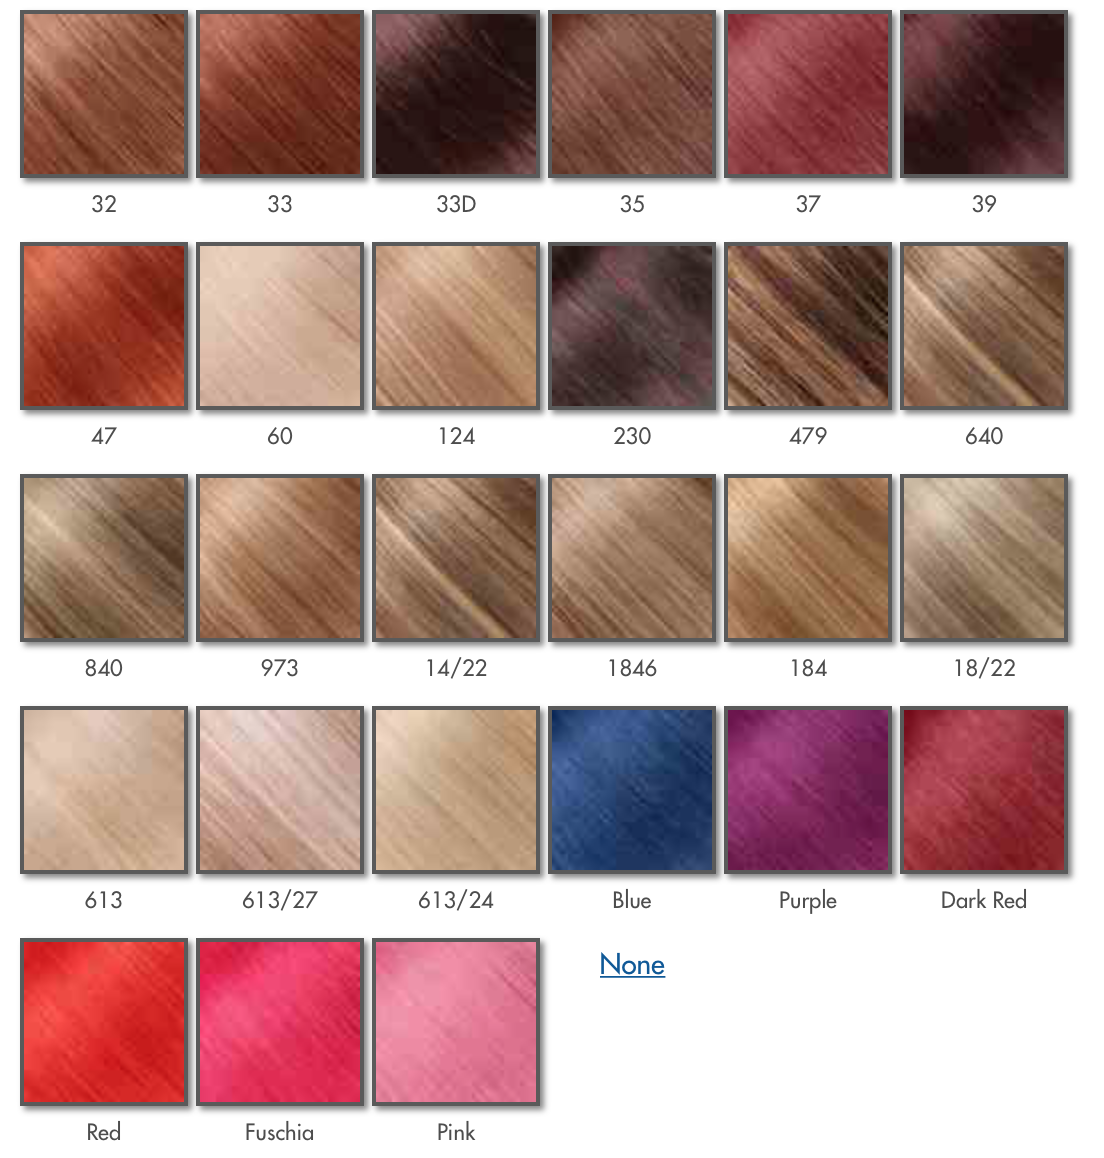 Products fabulonghair the colour chart below however for a more detailed colour match please email infofabulonghair sending a picture of your hair in a good natural day geenschuldenfo Images